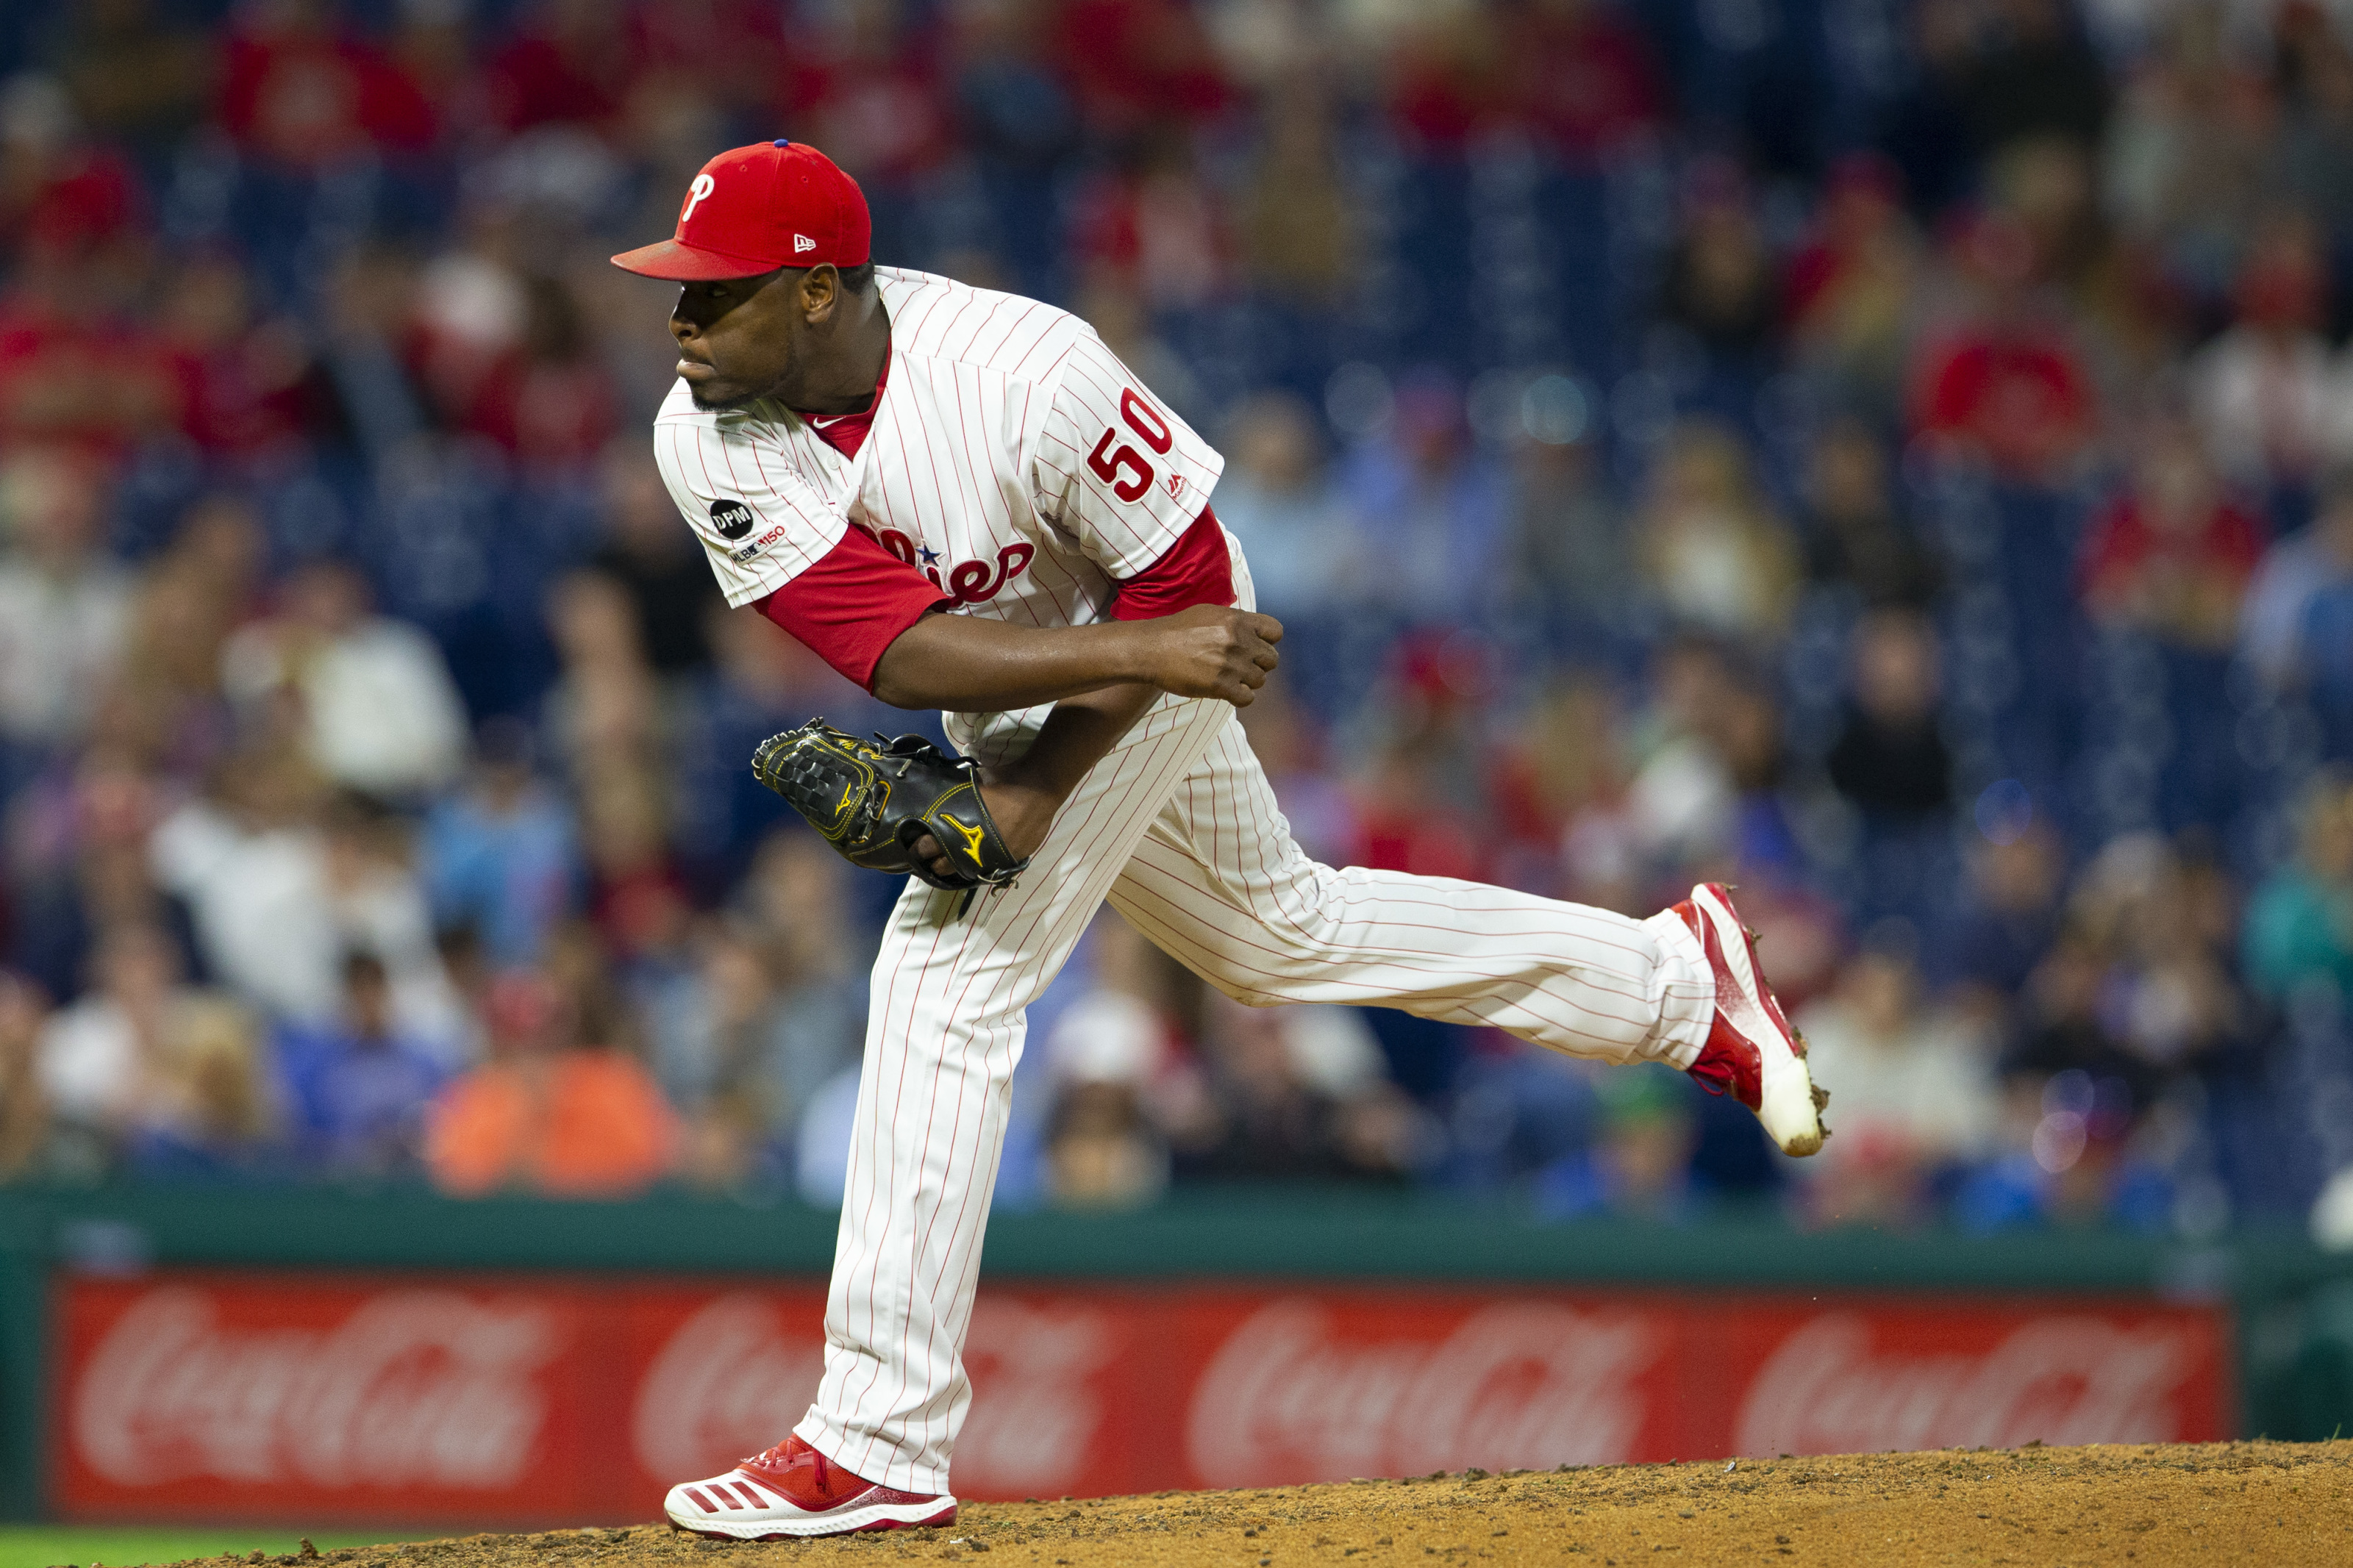 Phillies: Hector Neris could soon return from COVID-19 IL